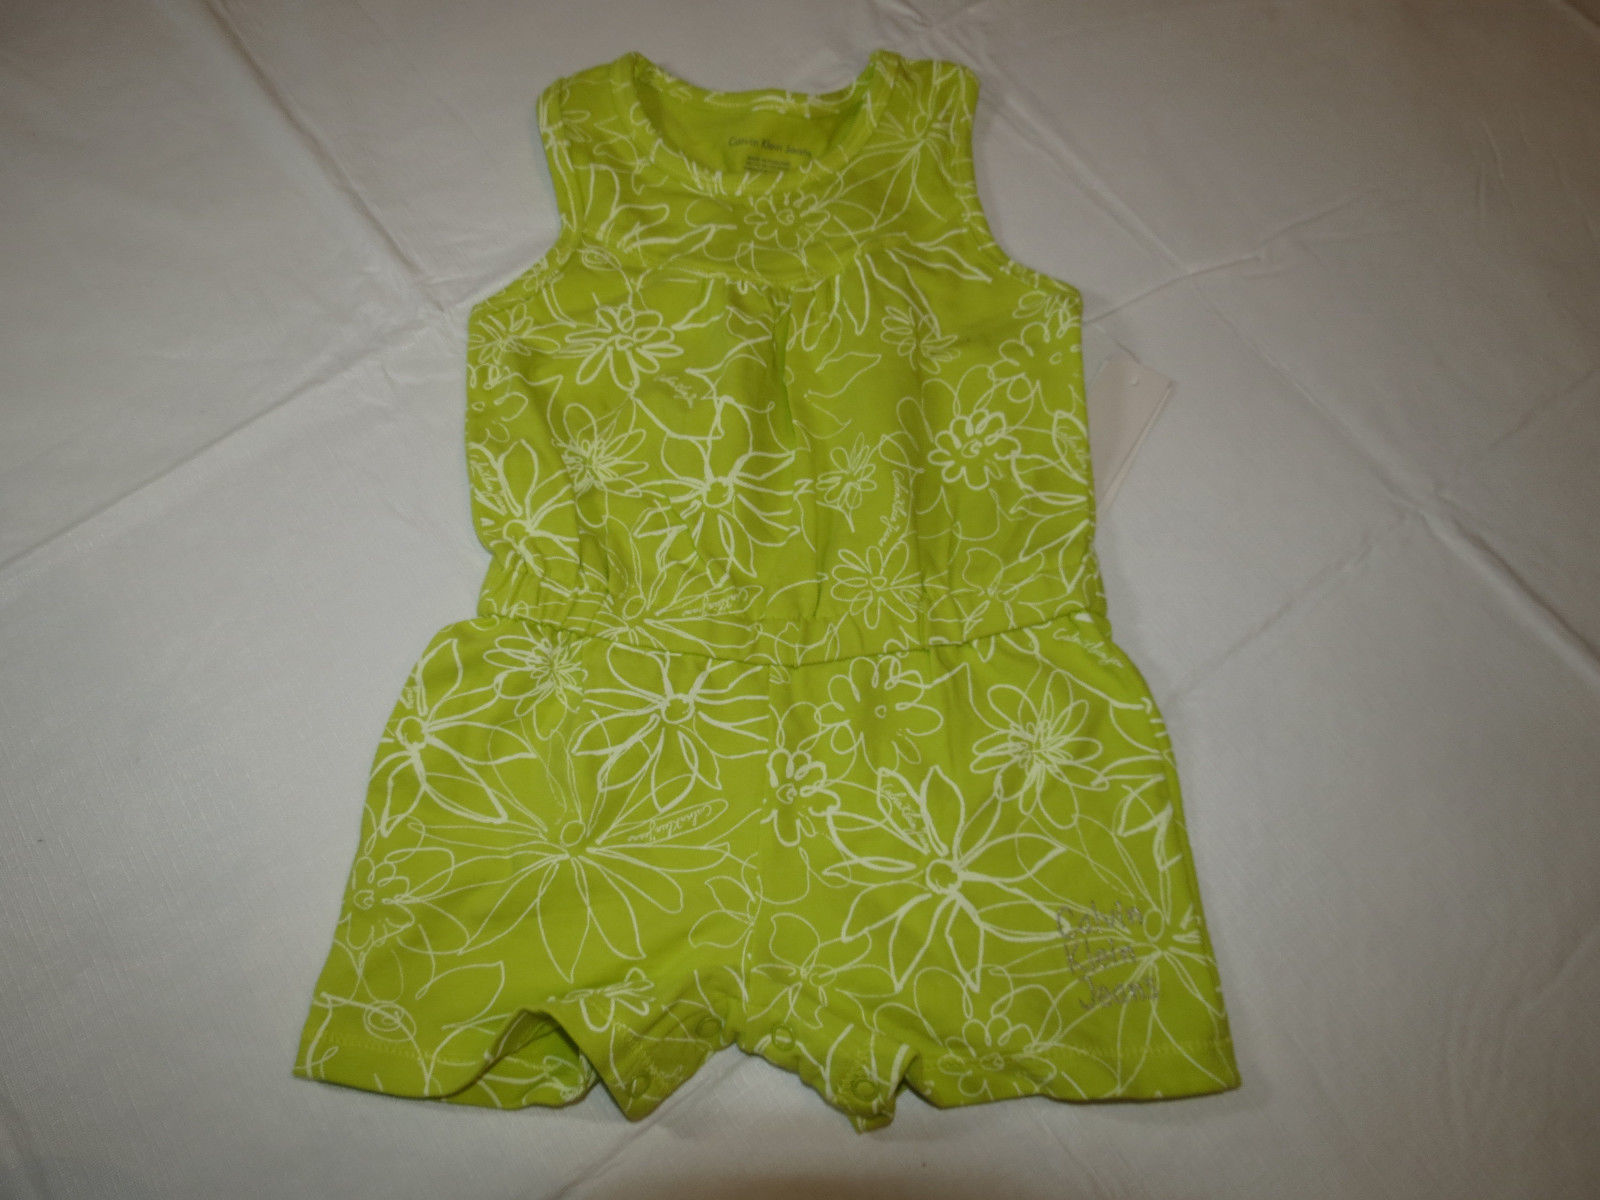 Primary image for Calvin Klein Jeans girls green white 3T toddler romper 3811042-99 NWT kids *^